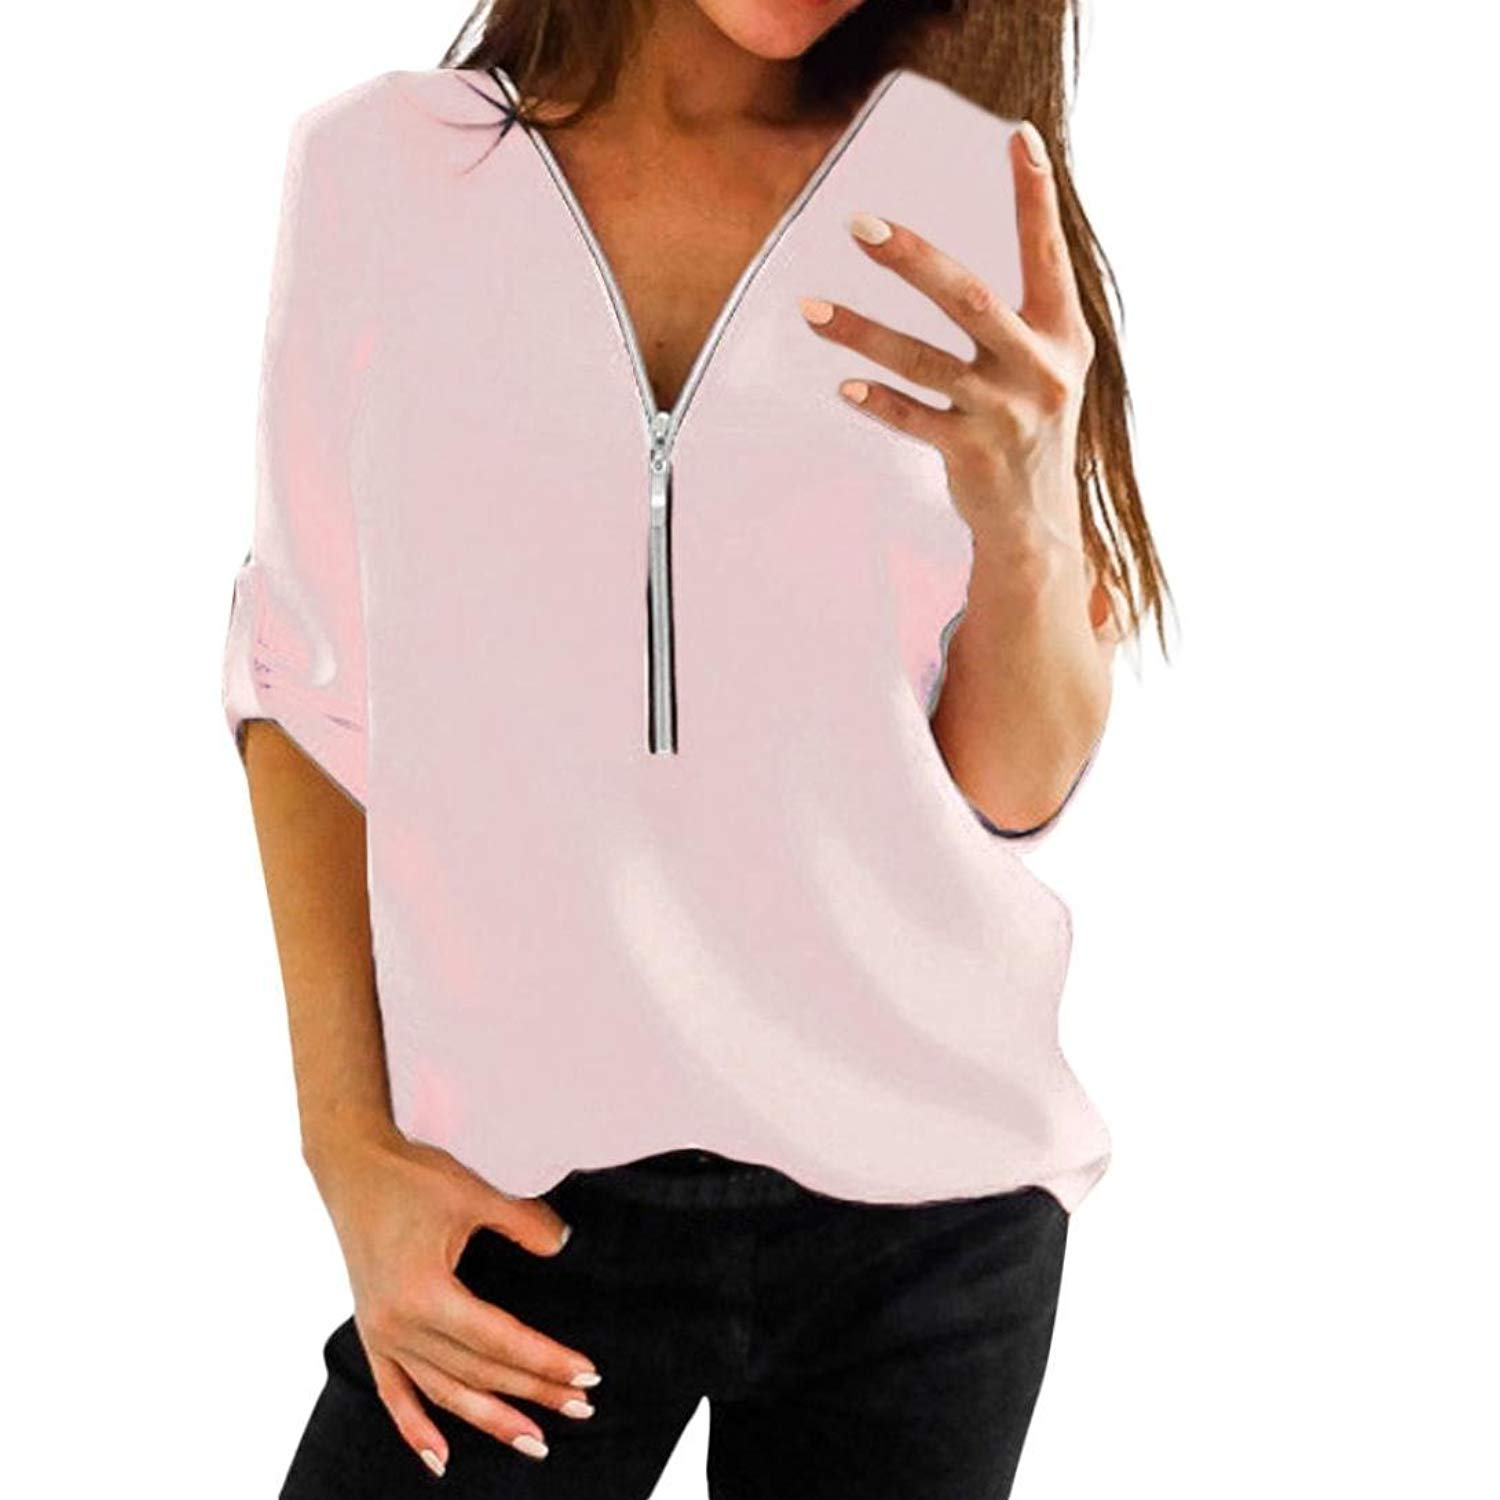 c70434202f60fe Get Quotations · Howstar Casual Women's T-Shirt Long Half Sleeve Blouse for  Work Tops with Zipper Shirts